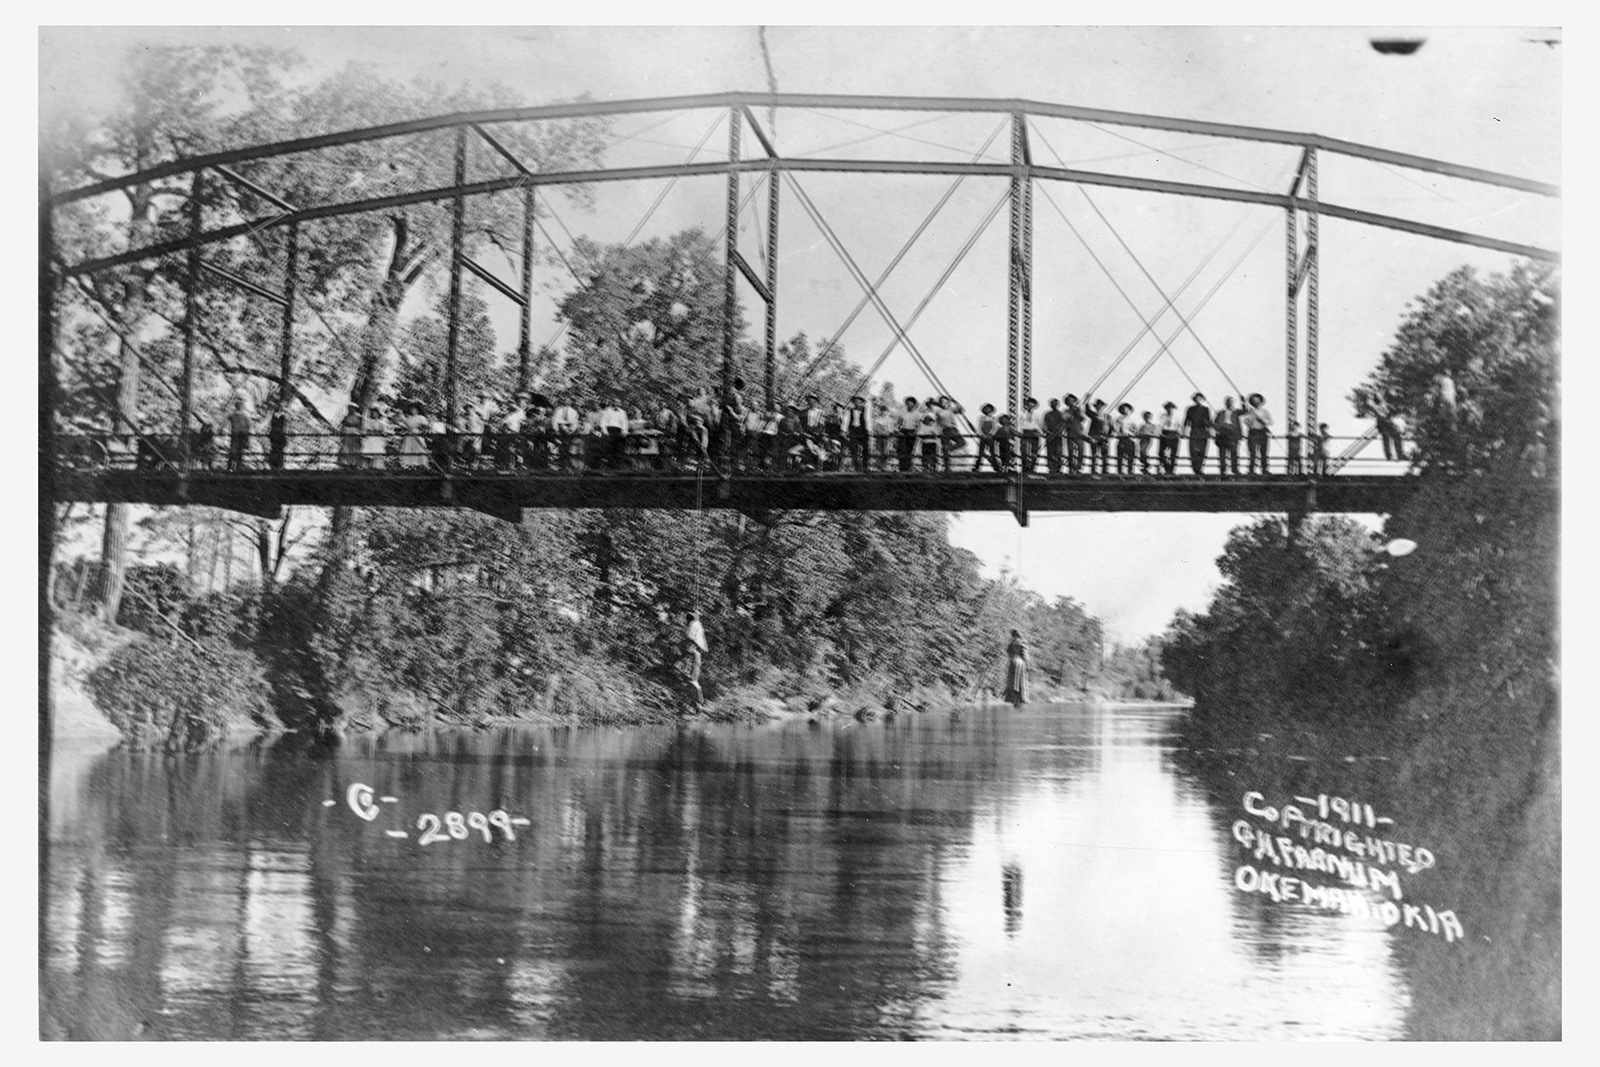 "This photograph shows the lynching of Laura and Lawrence Nelson on May 25, 1911 in Okemah, Oklahoma. One of thousands of lynchings throughout the South in the late nineteenth and century twentieth centuries, this particular case of the lynching of a mother and son garnered national attention. In response, the local white newspaper in Okemah simply wrote, ""while the general sentiment is adverse to the method, it is generally thought that the negroes got what would have been due them under due process of law."" (The Okemah Ledger, May 4, 1911) George H. Farnum (photographer), Photograph, May 25, 1911. Wikimedia, http://commons.wikimedia.org/wiki/File:Lynching_of_Laura_Nelson_and_her_son_2.jpg."